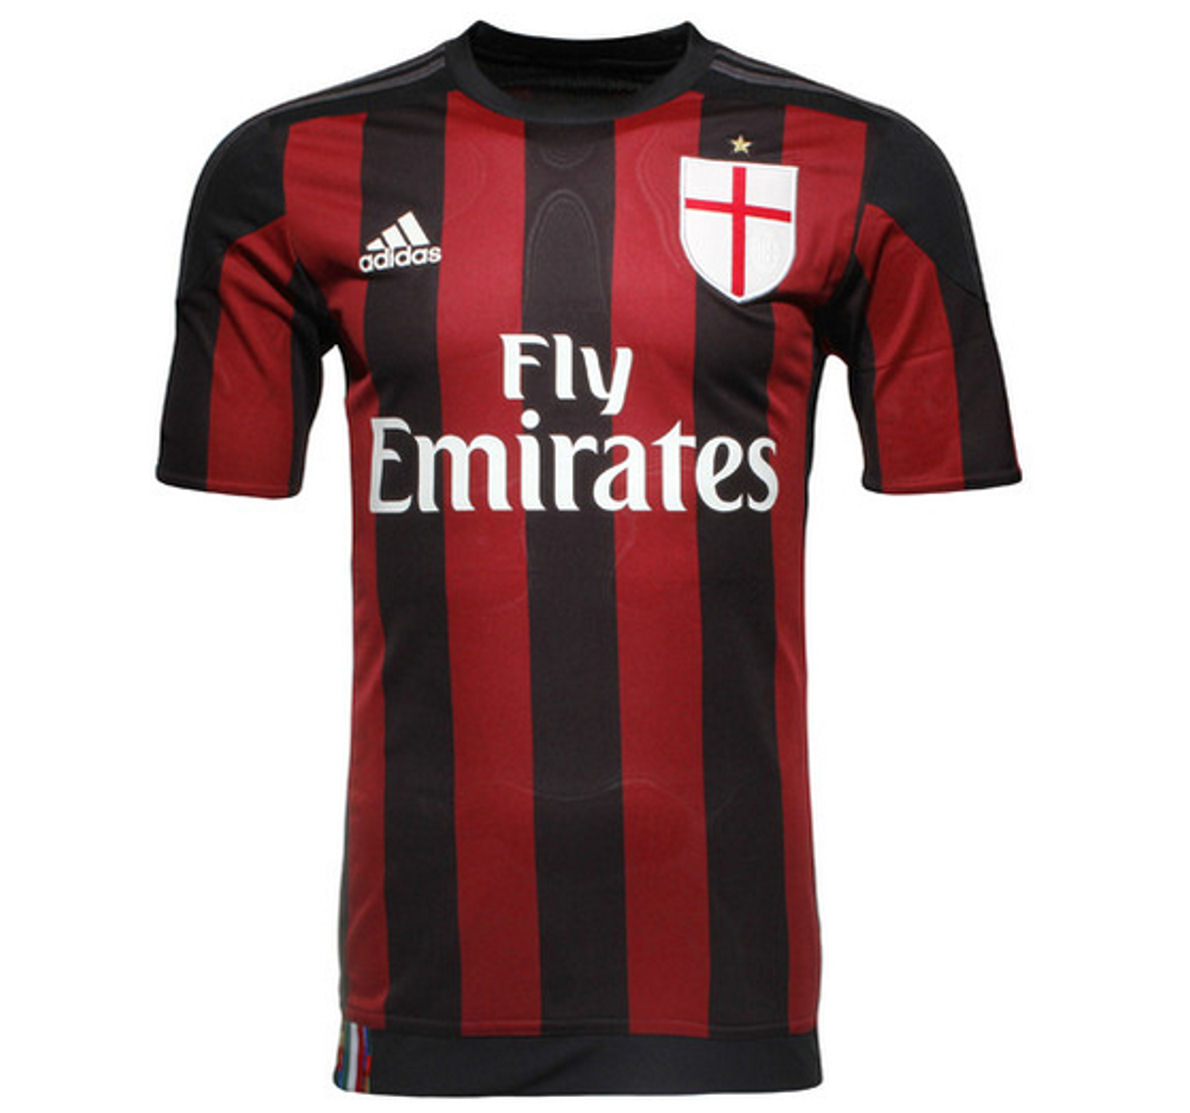 2015-2016 AC Milan Adidas Authentic Home Football Shirt